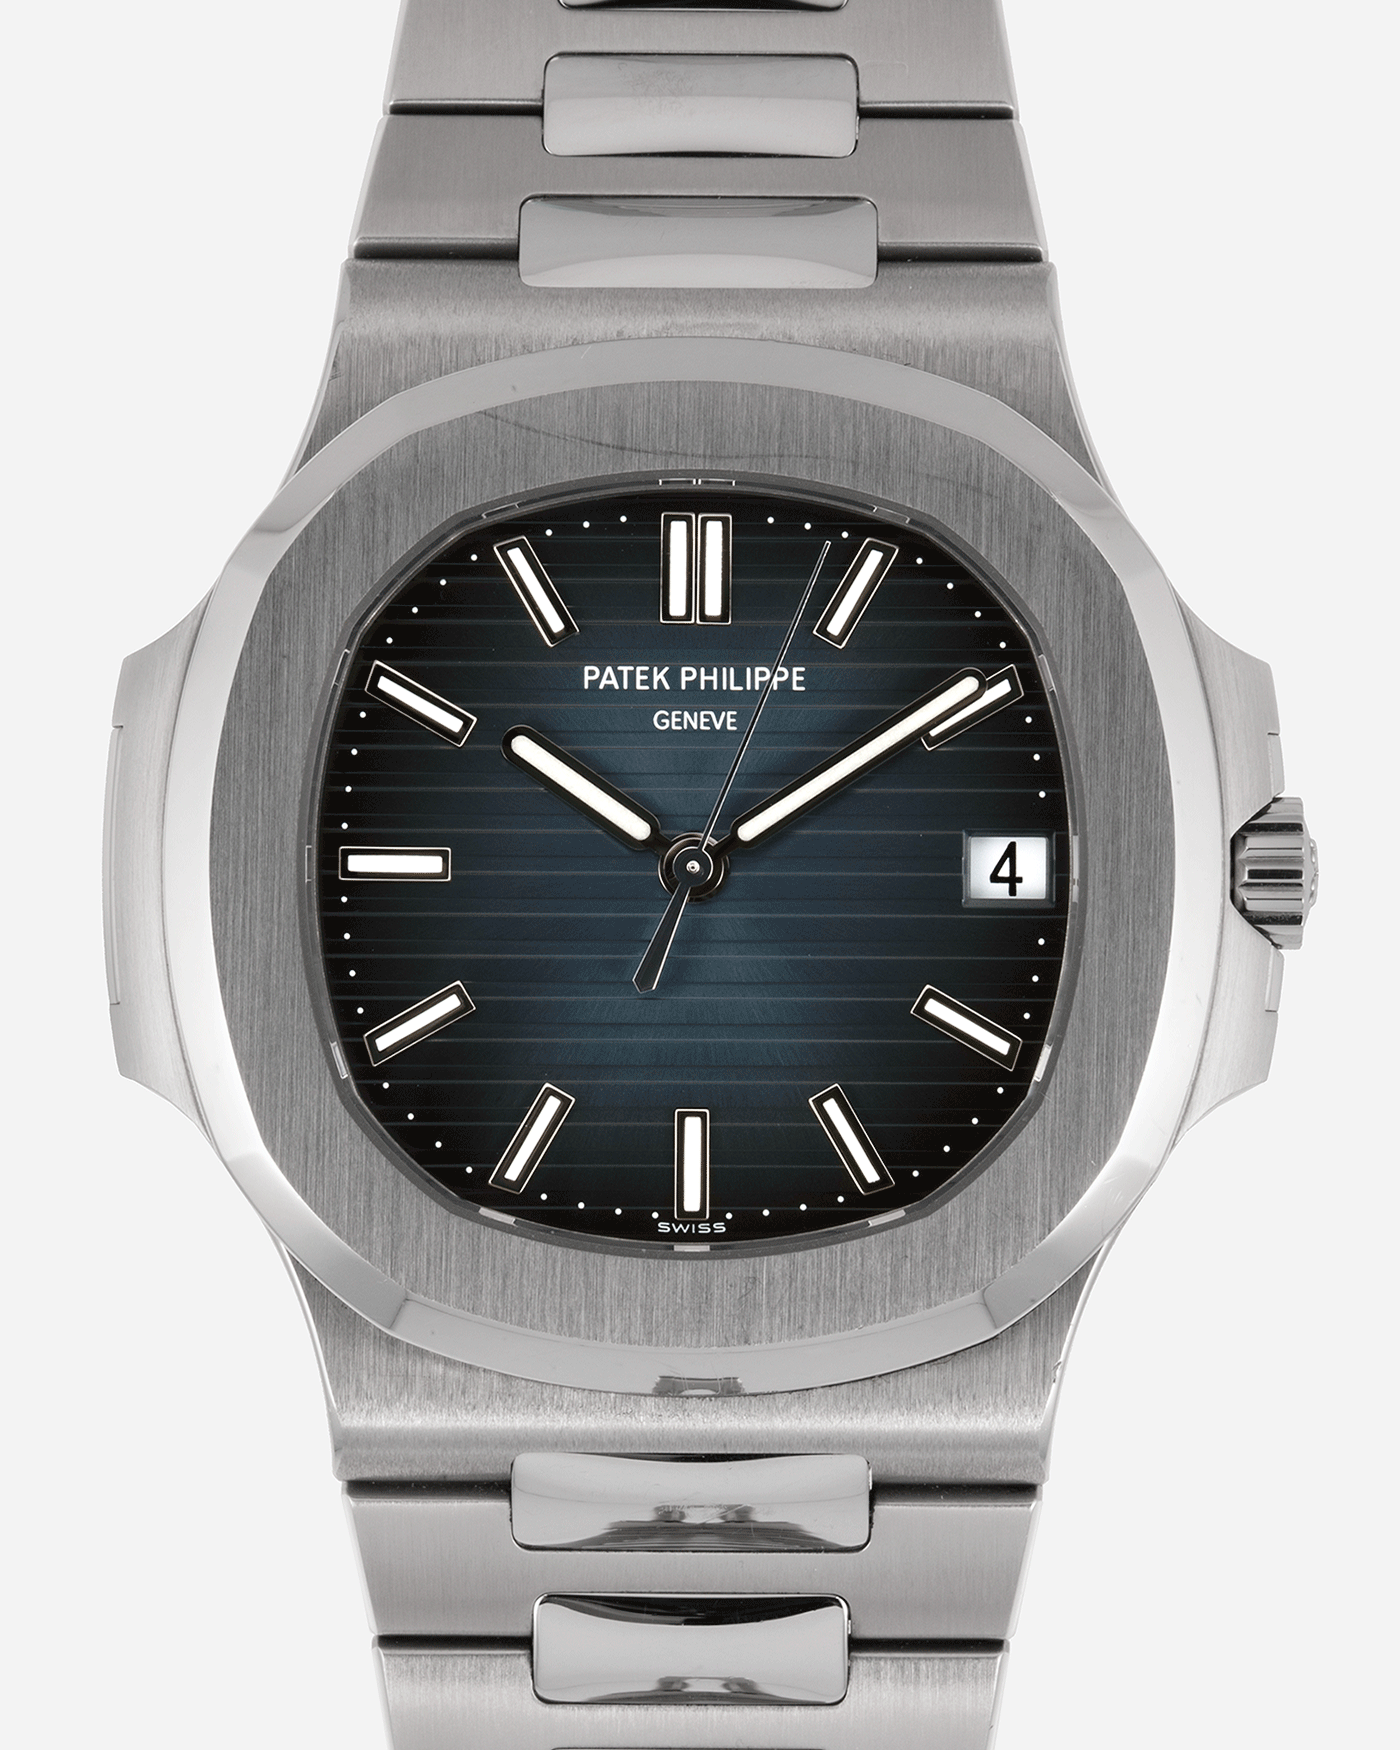 Brand: Patek Philippe Year: 2014 Model: Nautilus Reference Number: 5711A Material: Stainless Steel Movement: Calibre 324SC Case Diameter: 40mm Bracelet: Patek Philippe Integrated Stainless Steel Bracelet